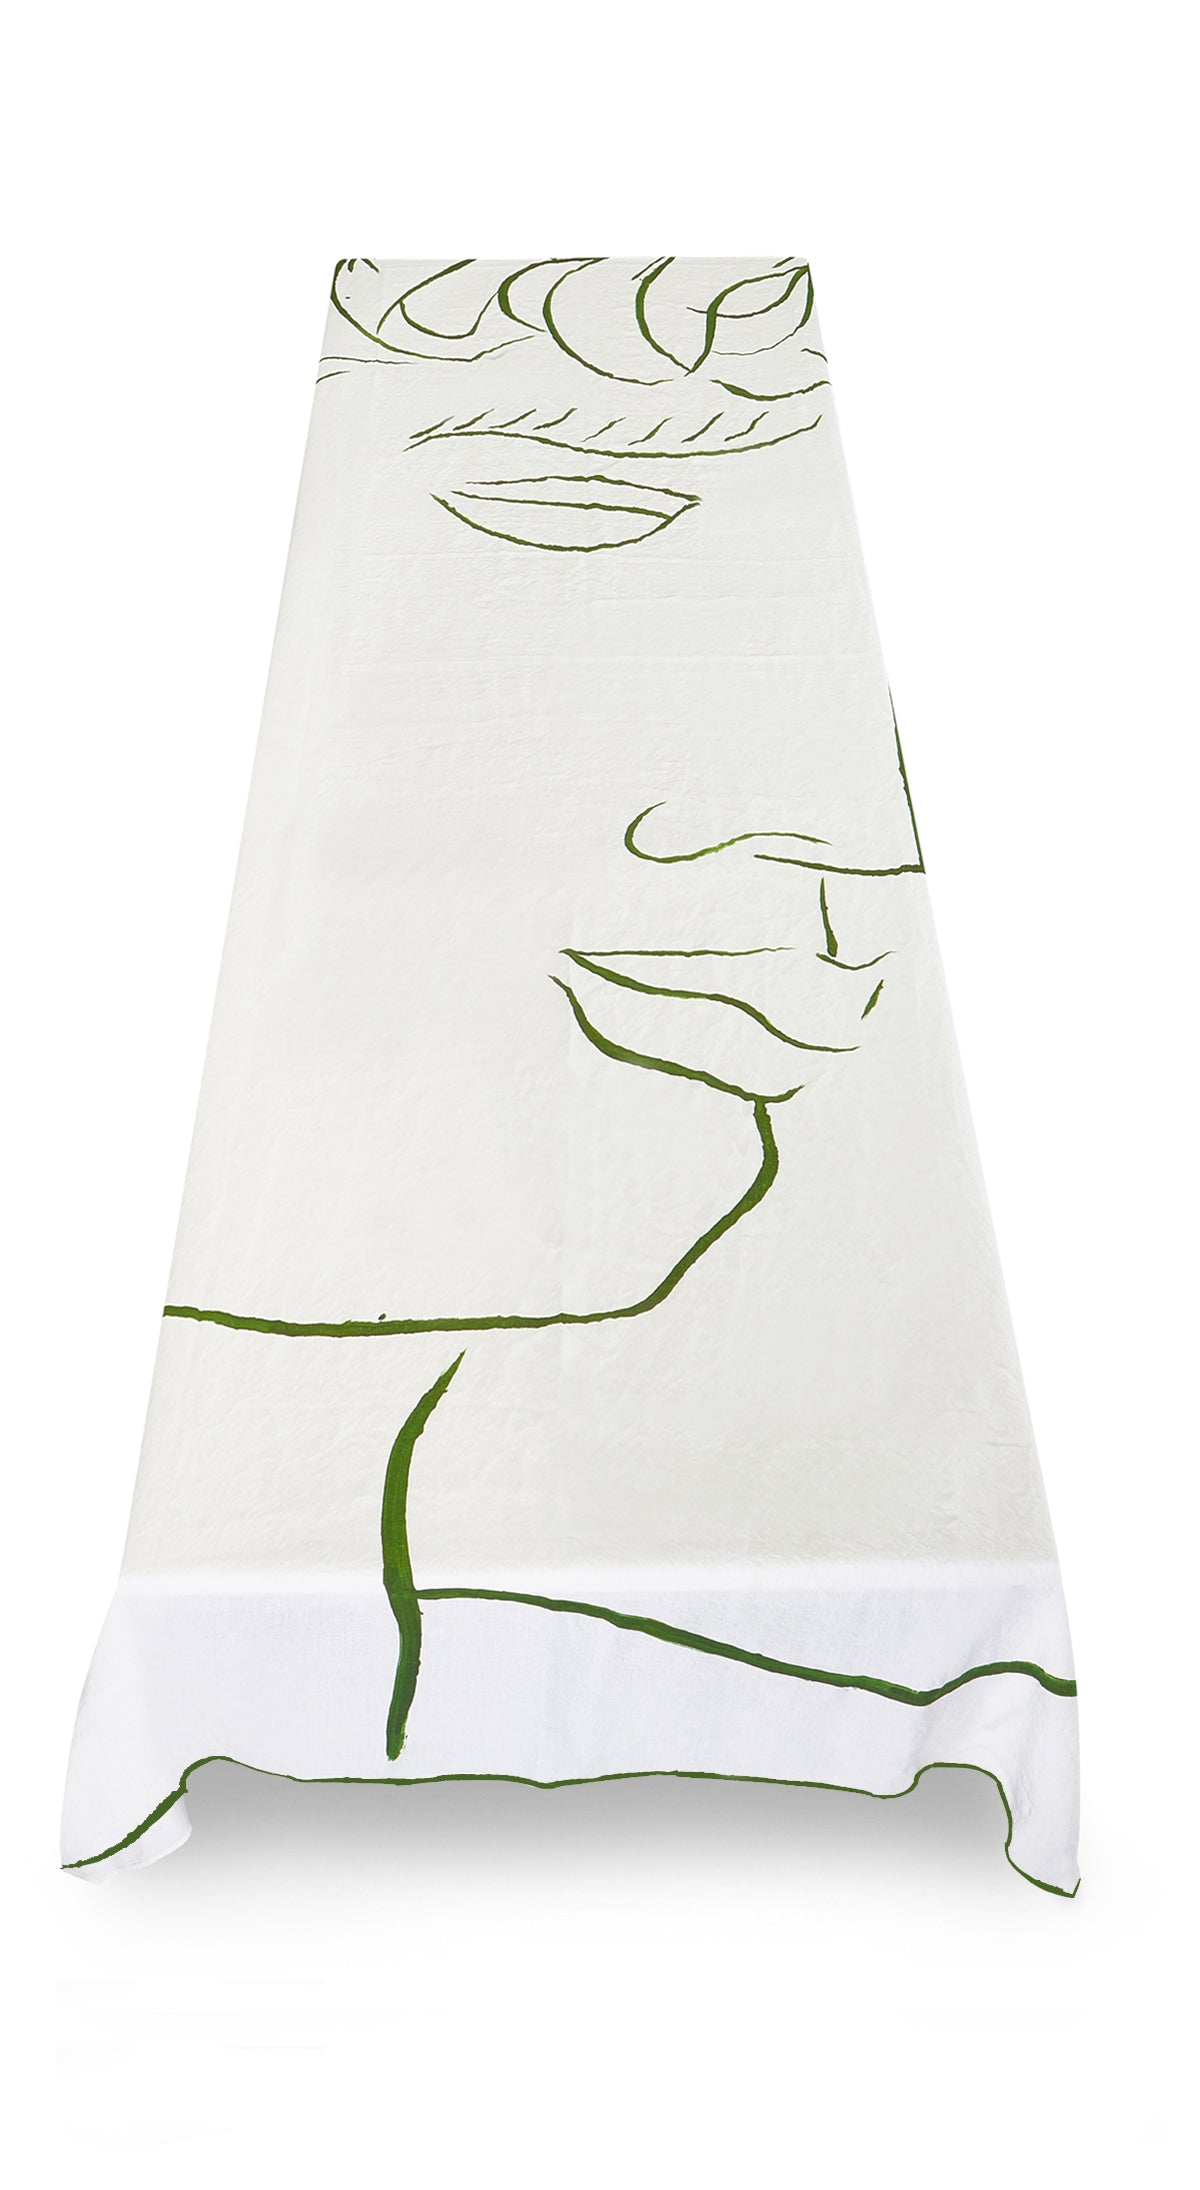 'Antinous I' S&B x Luke Edward Hall Linen Tablecloth